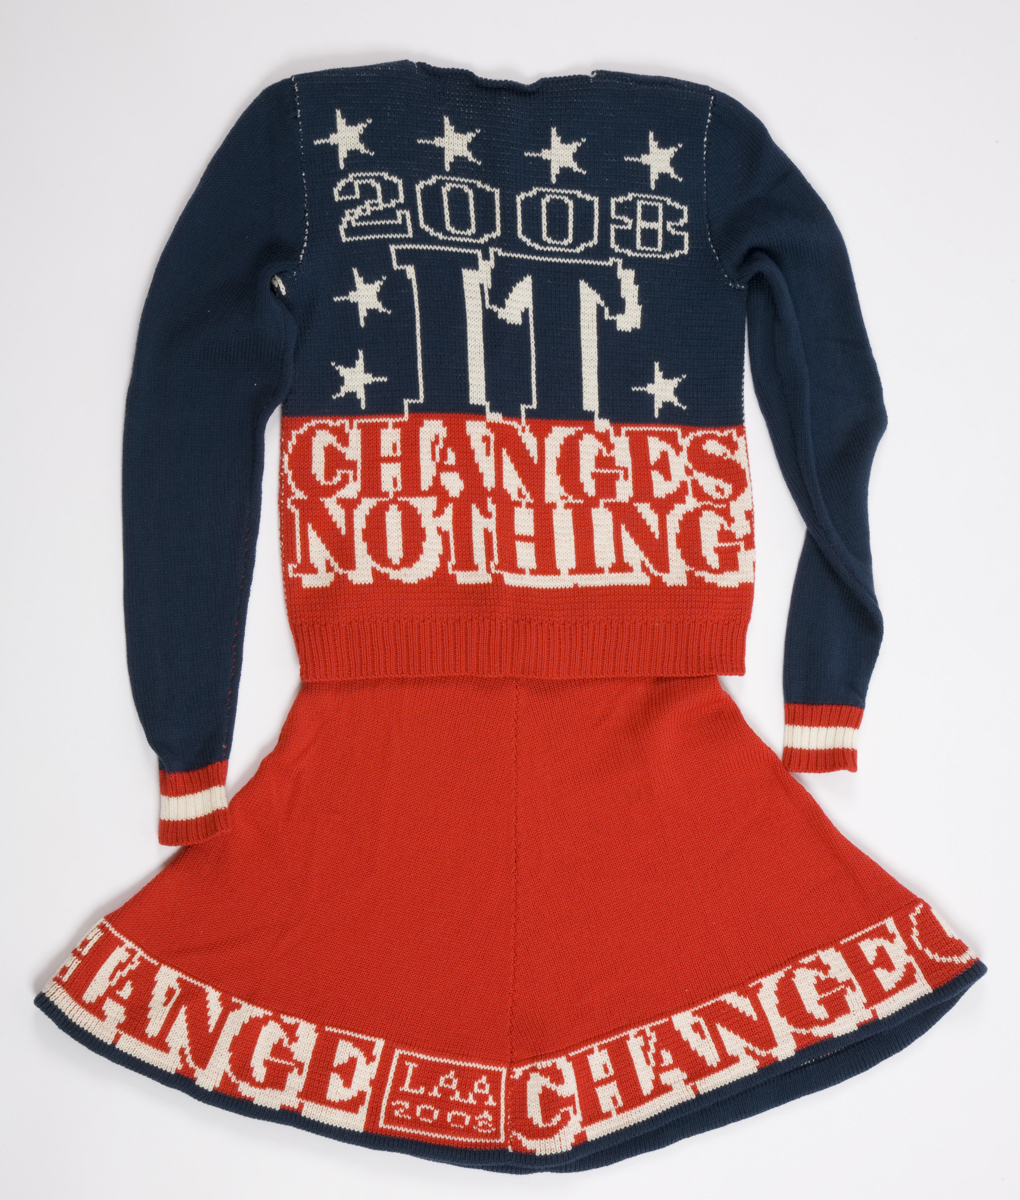 If Nothing Changes, It Changes Nothing (back), 2009